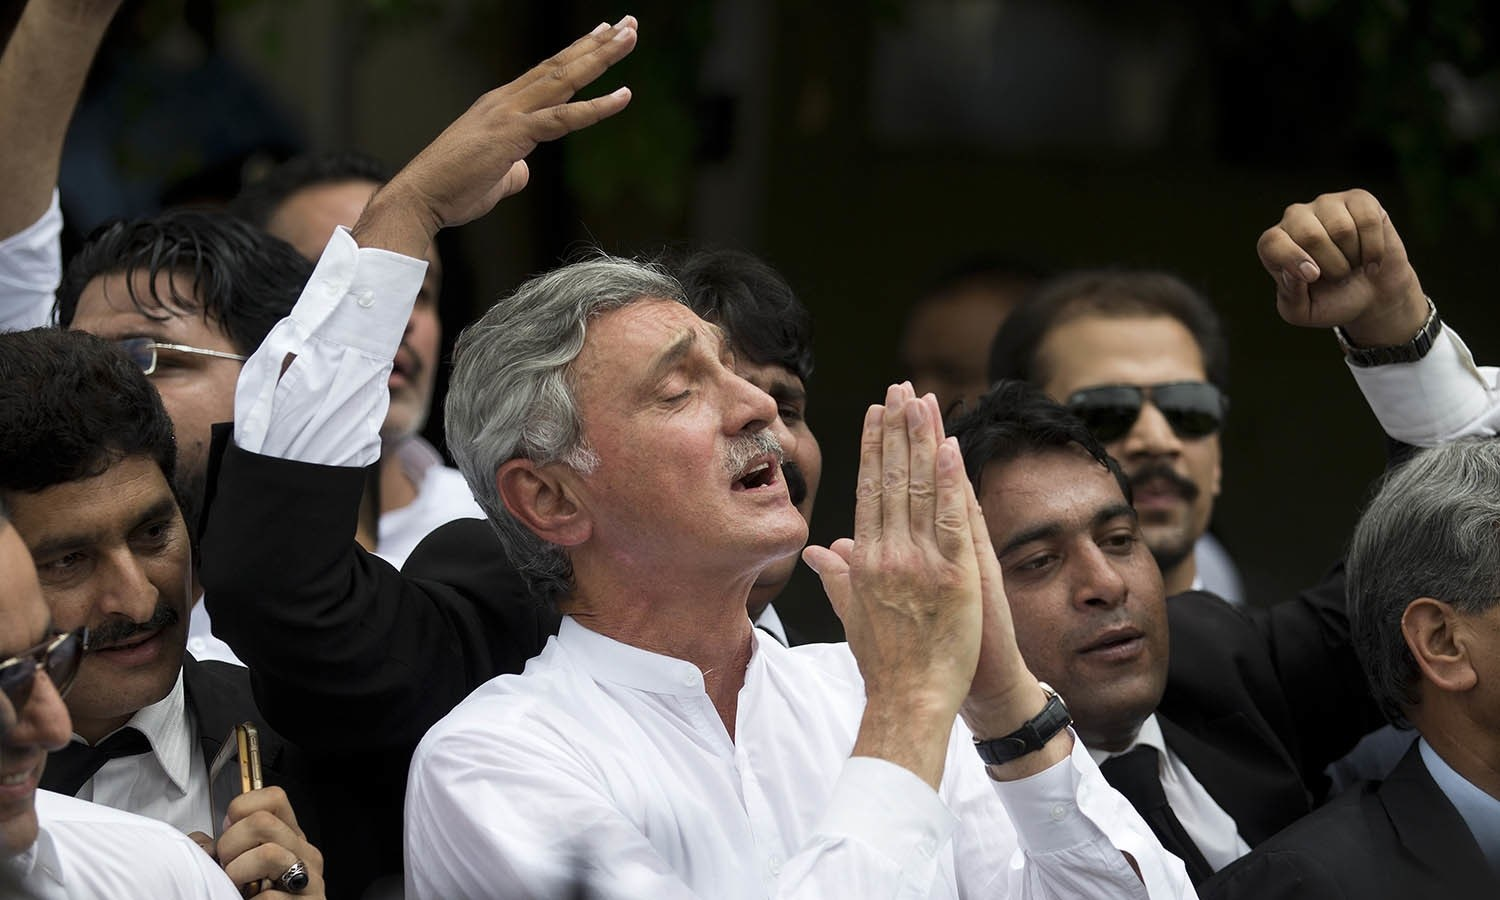 Jahangir Tareen — one of Pakistan's wealthiest lawmakers